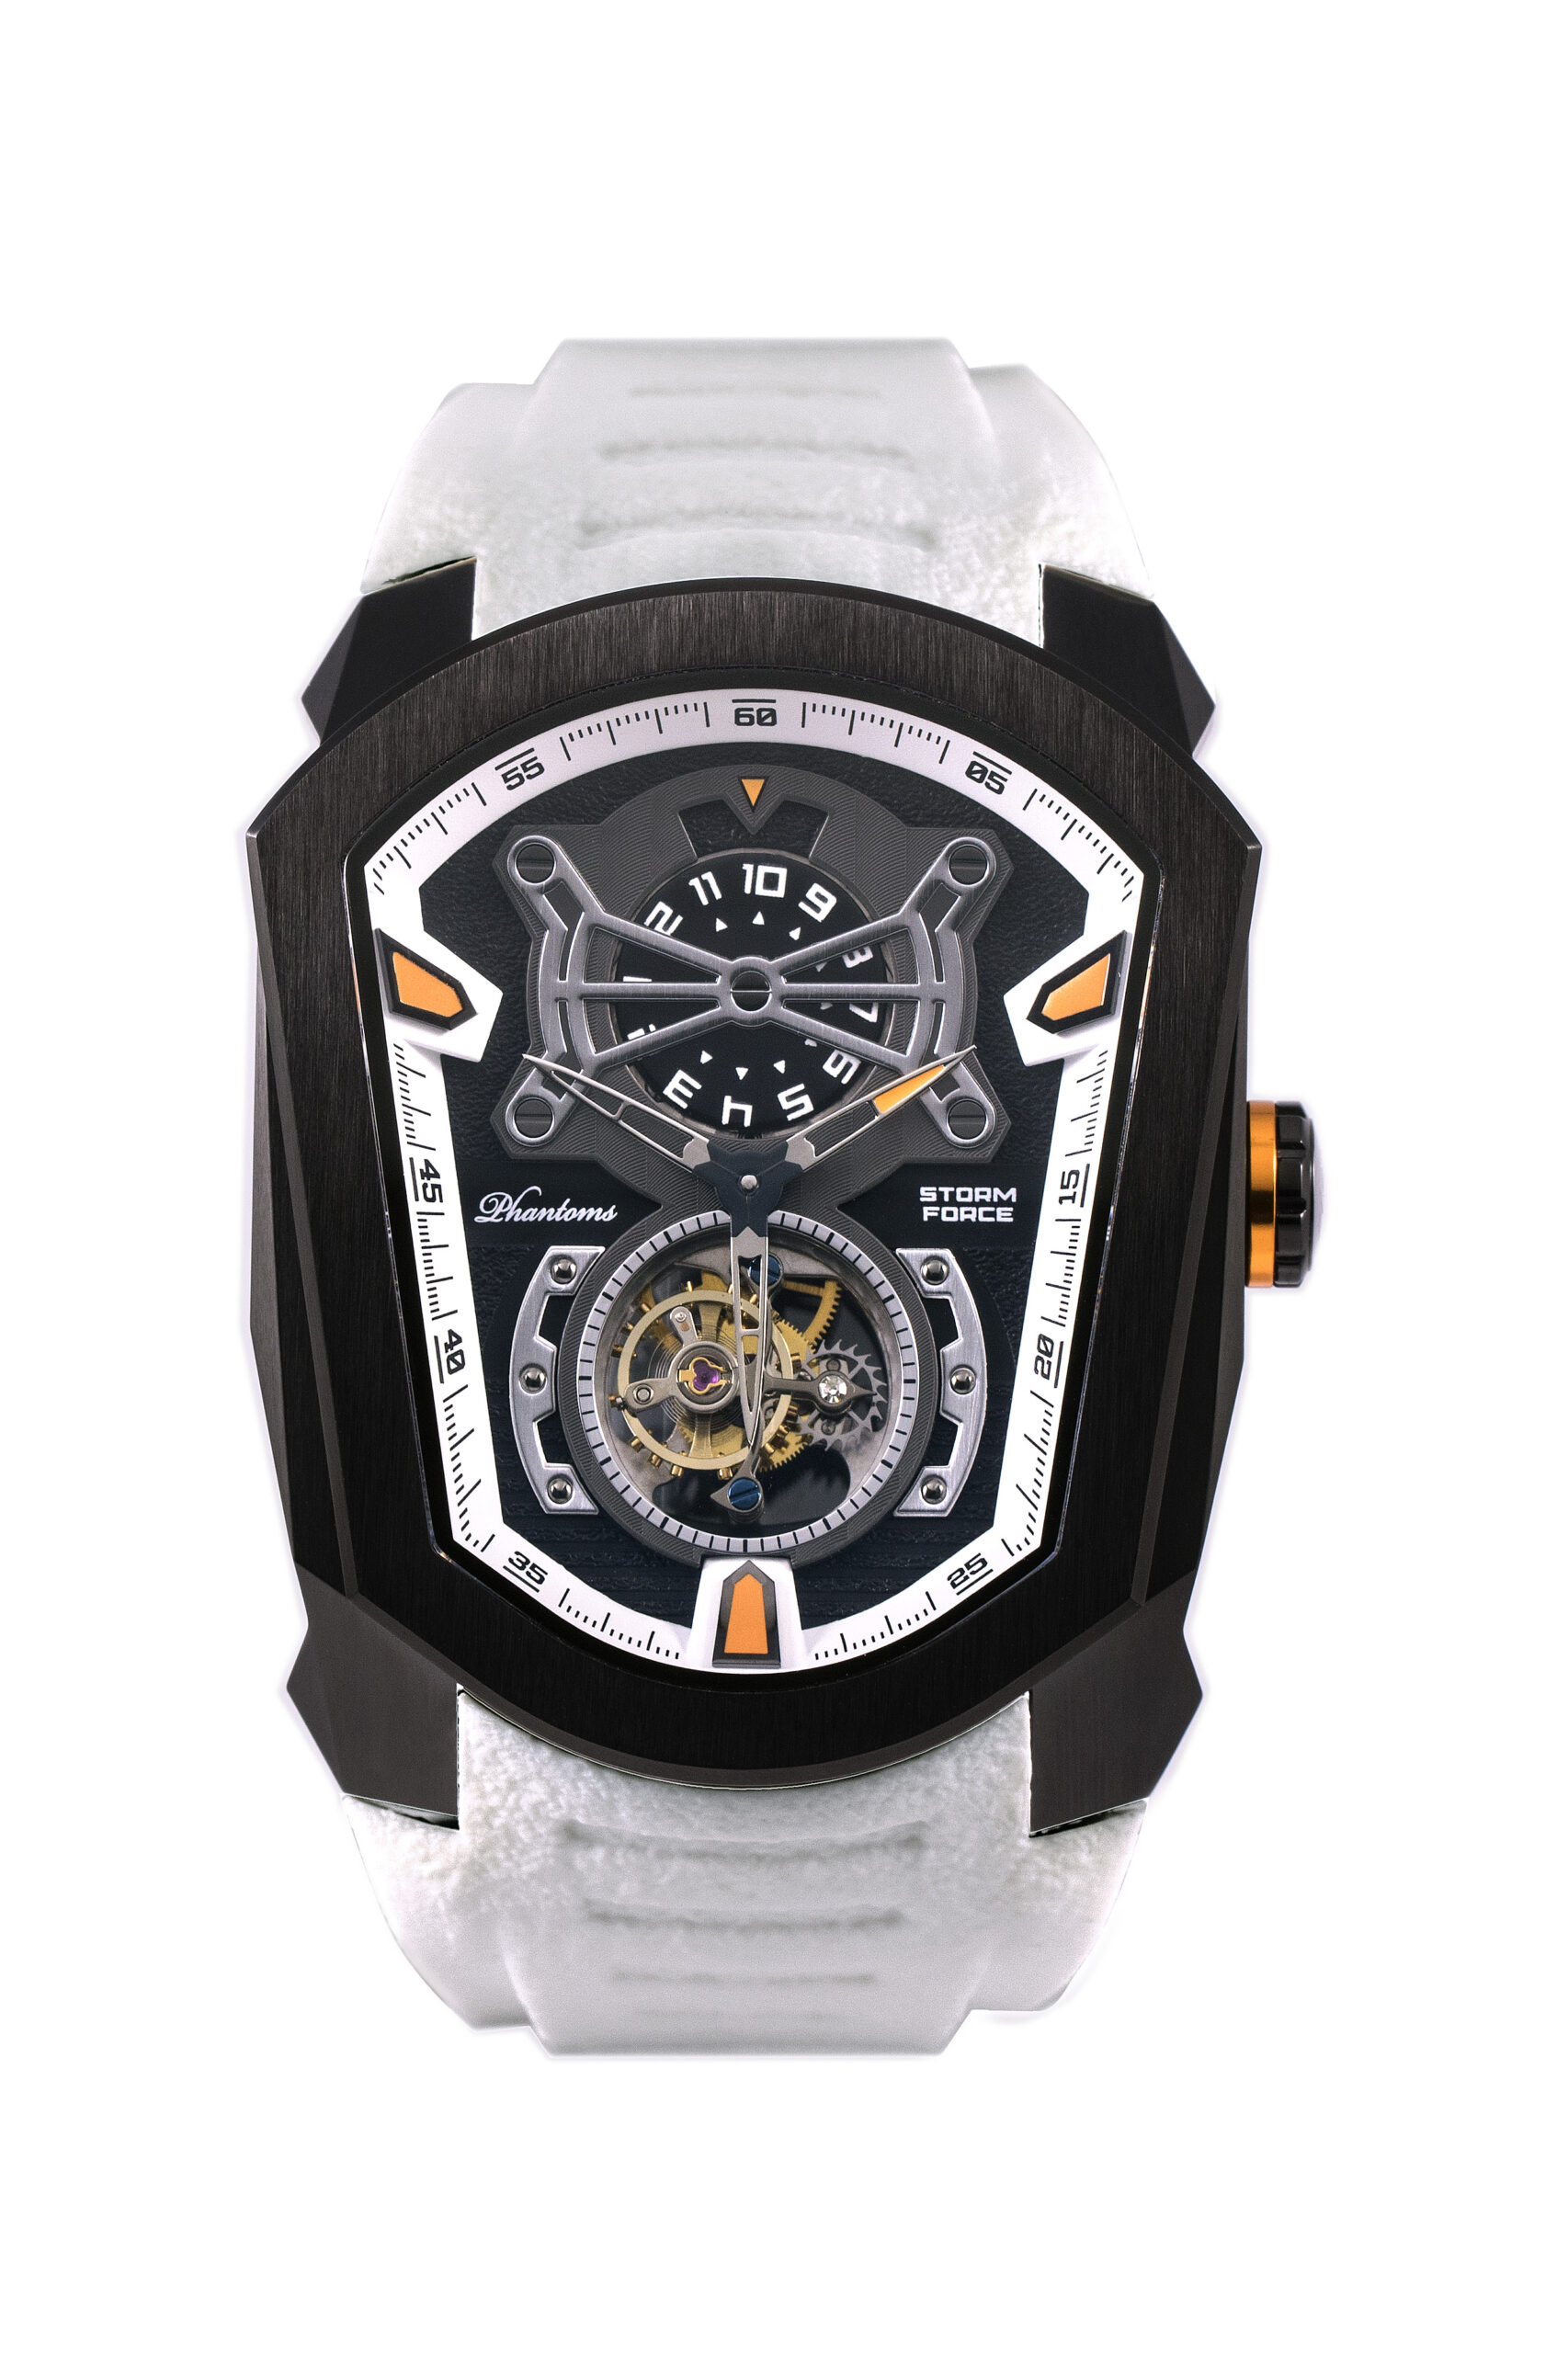 Phantoms Storm Force Flying Tourbillon Mechanical Watch